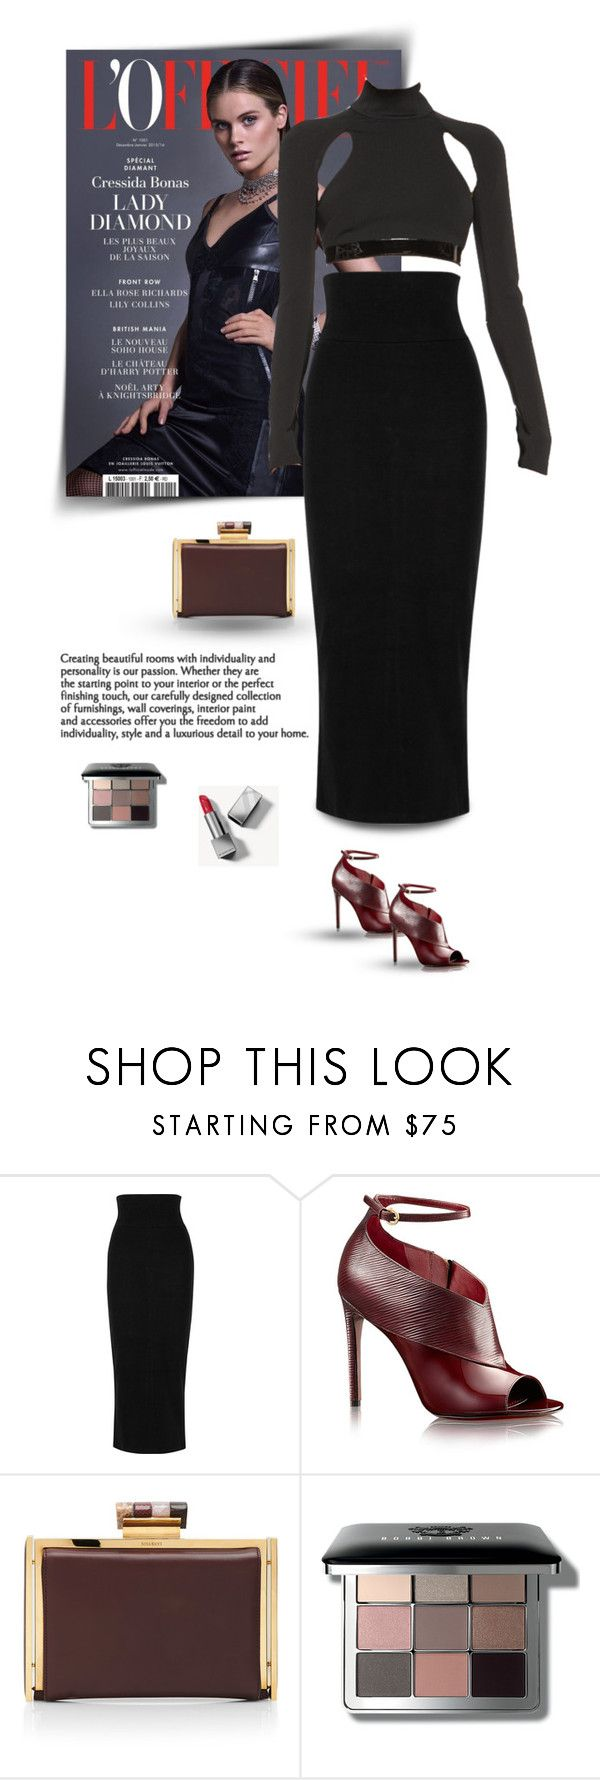 """25.04.2017"" by bliznec-anna ❤ liked on Polyvore featuring James Perse, Nina Ricci, Bobbi Brown Cosmetics, Burberry and polyvorefashion"